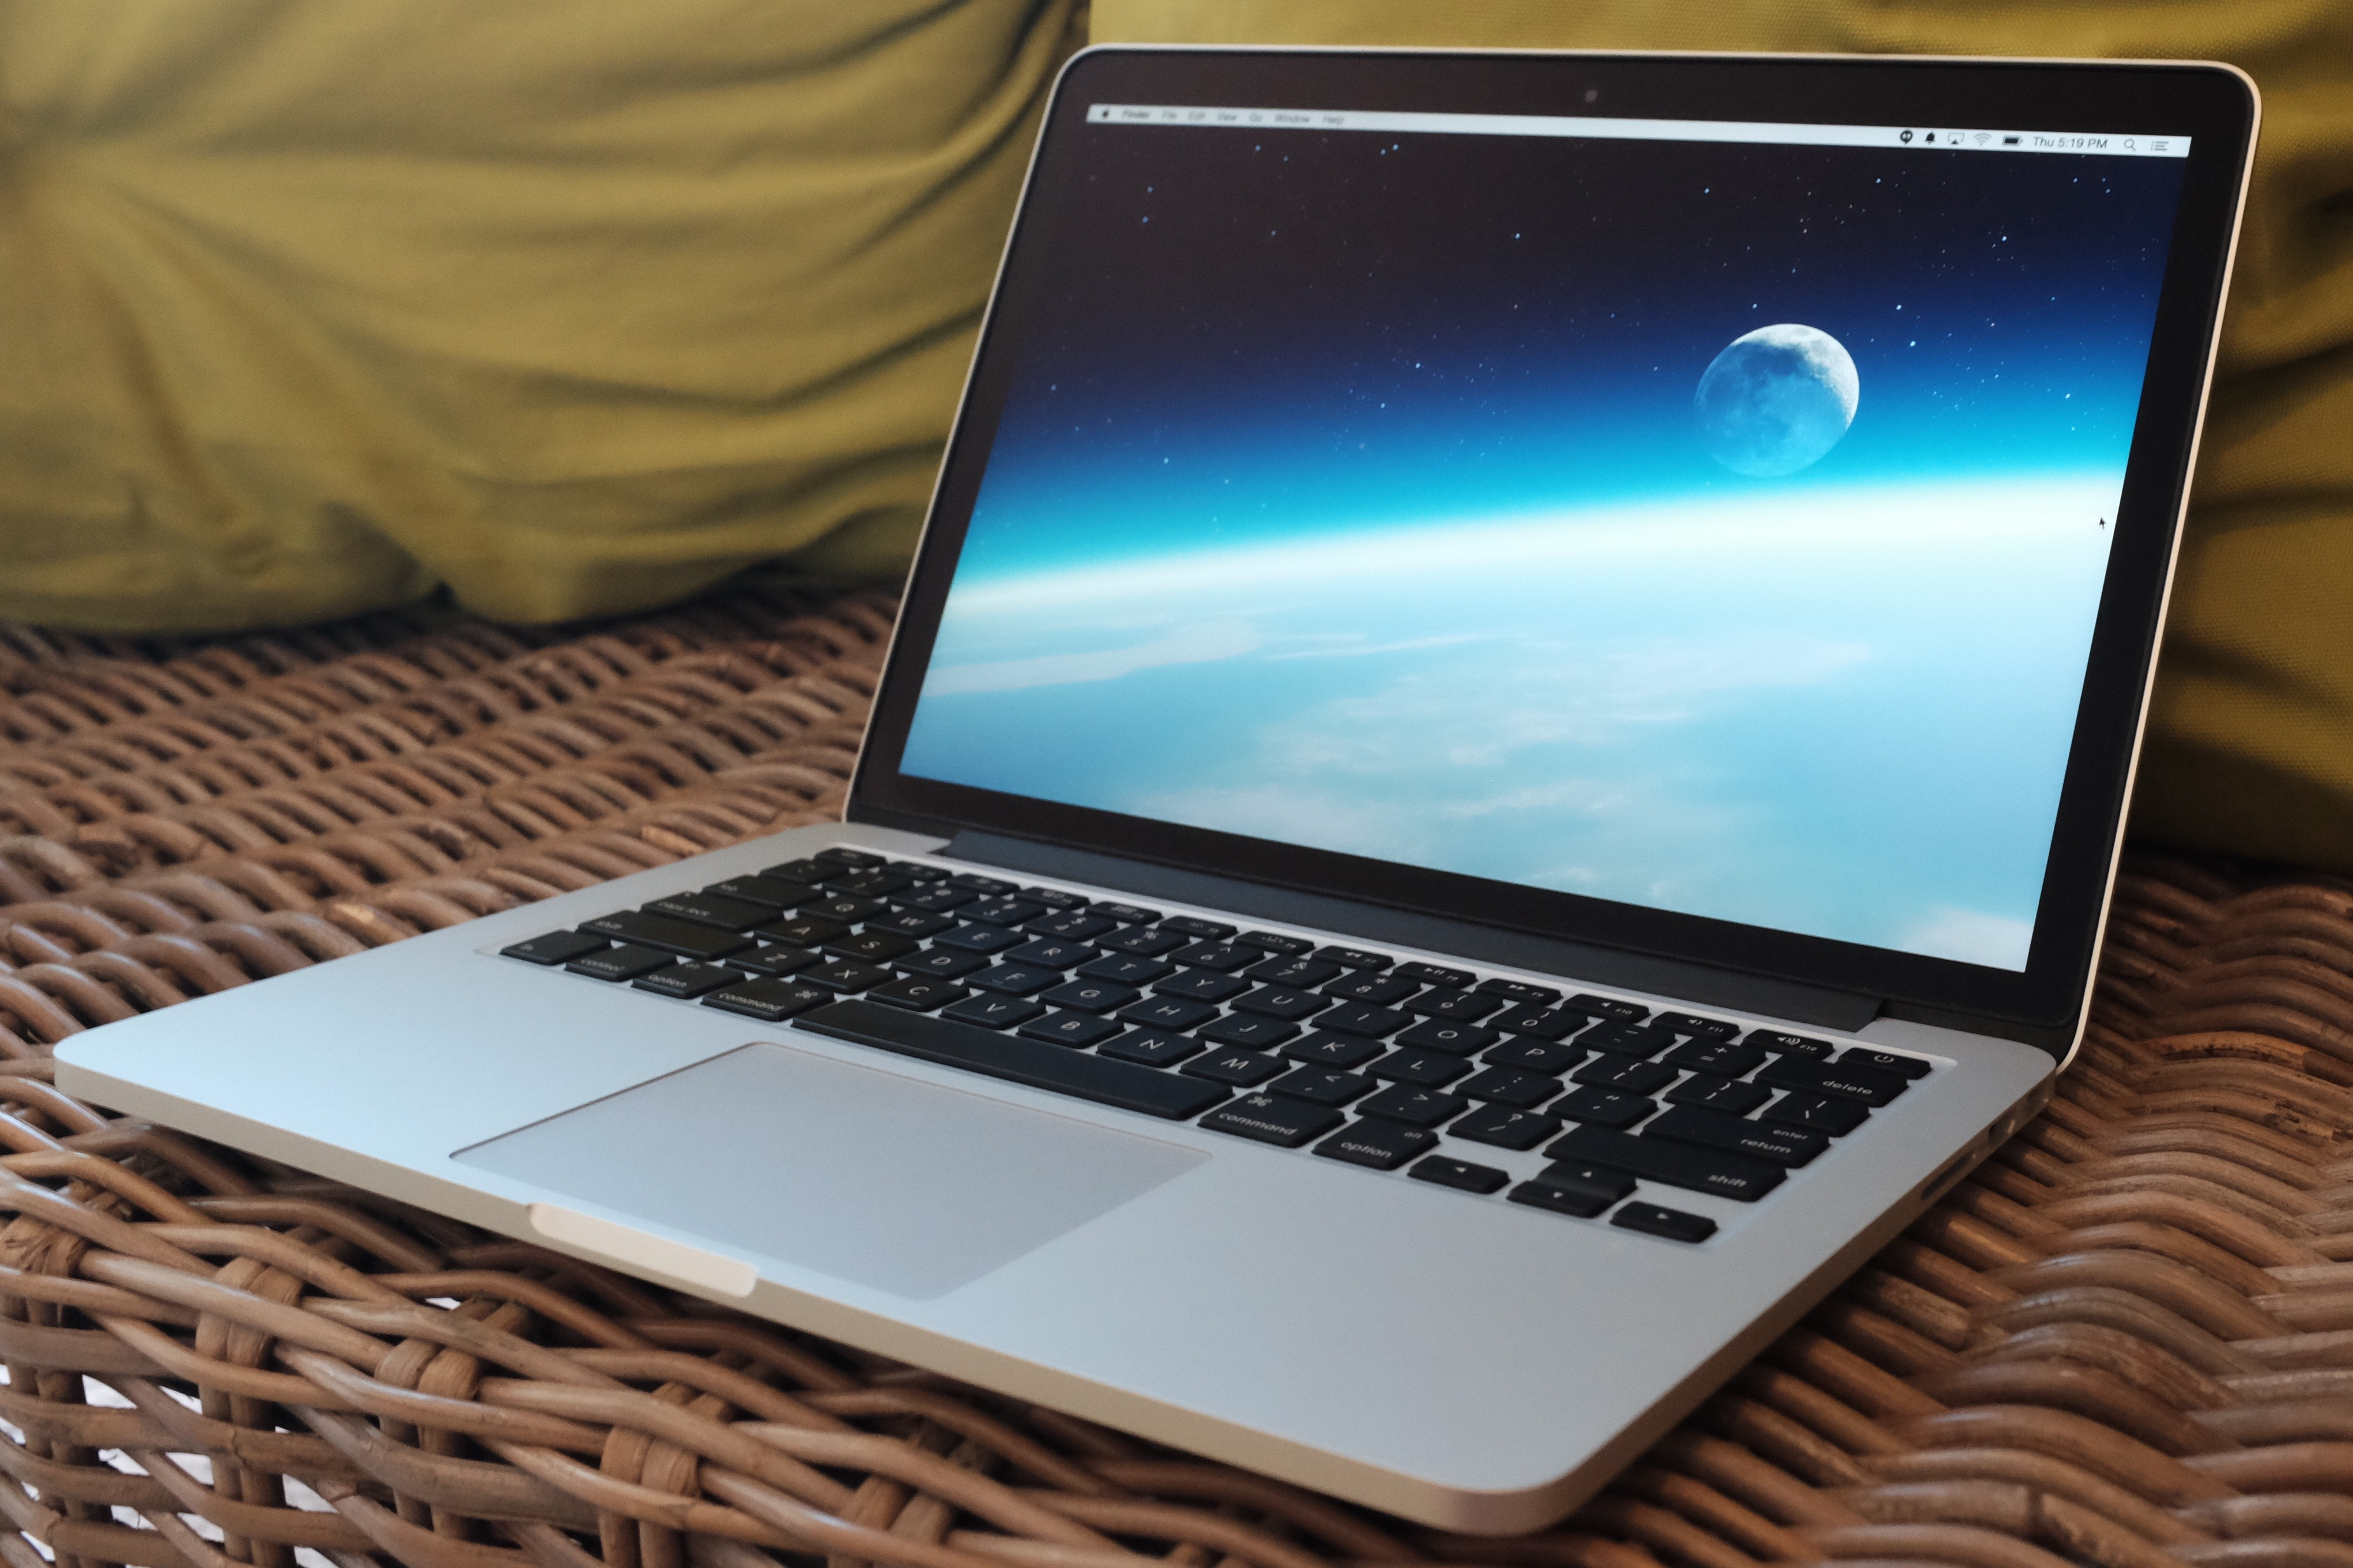 13-inch MacBook Pro with Retina Display (Early 2015 ...